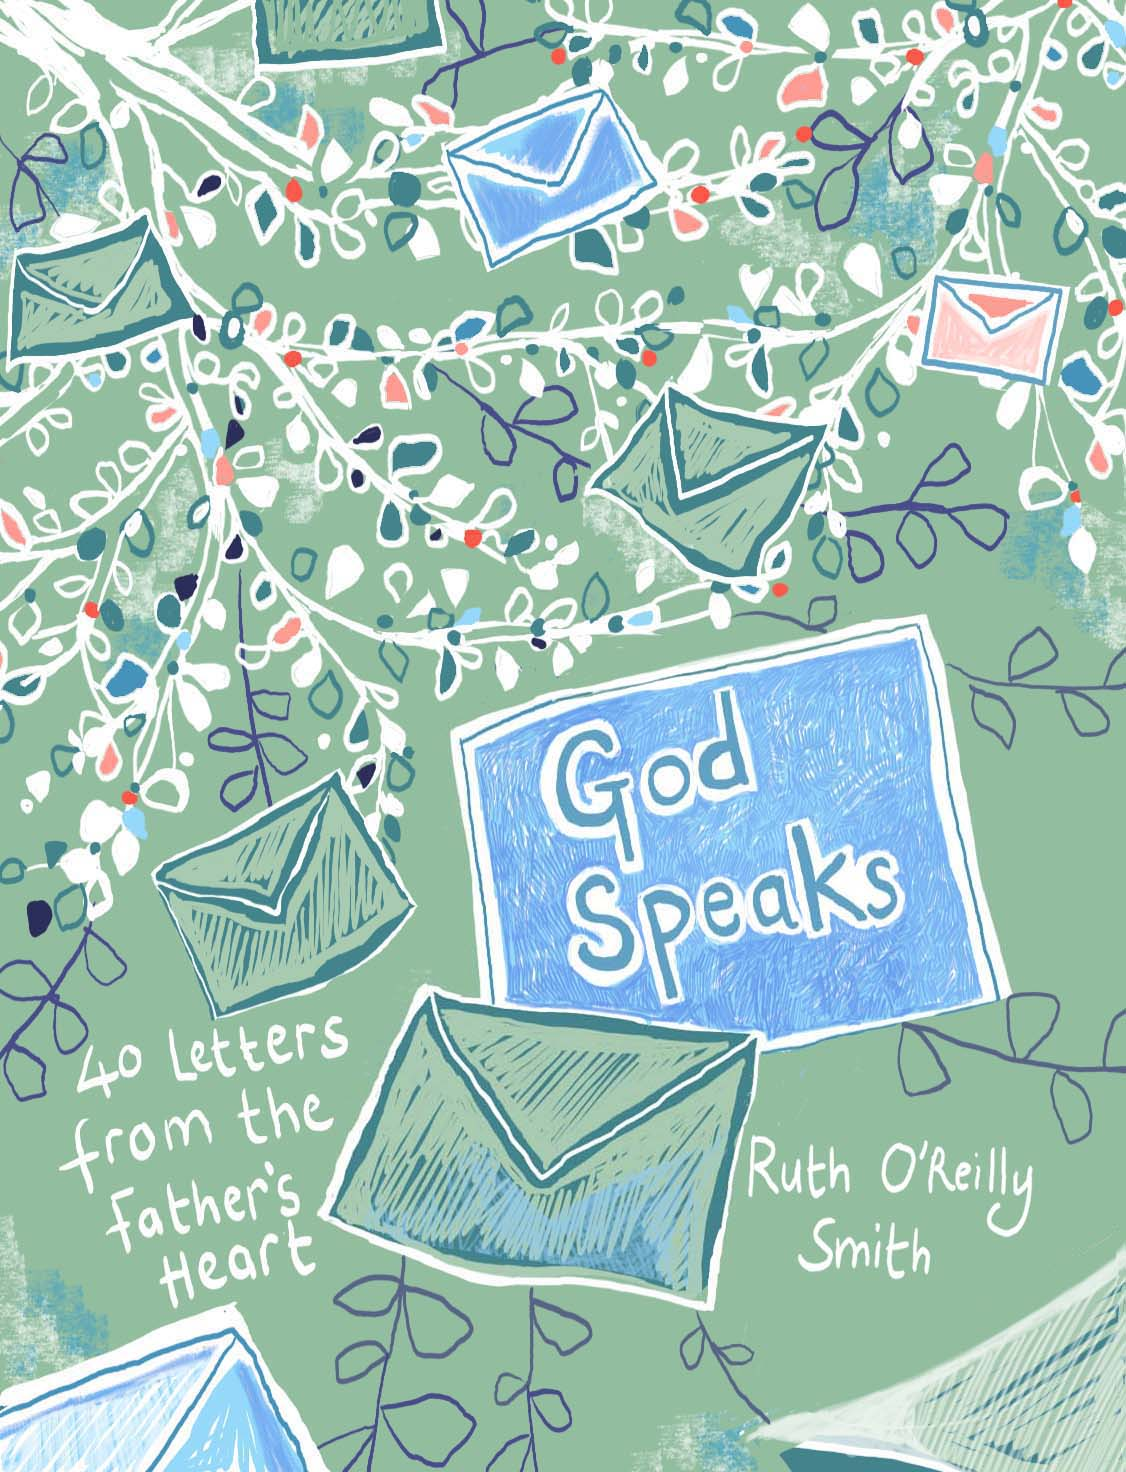 """UK National Radio Host Ruth O'Reilly Smith Releases First Book """"God Speaks Book – 40 Letters From The Father's Heart"""""""